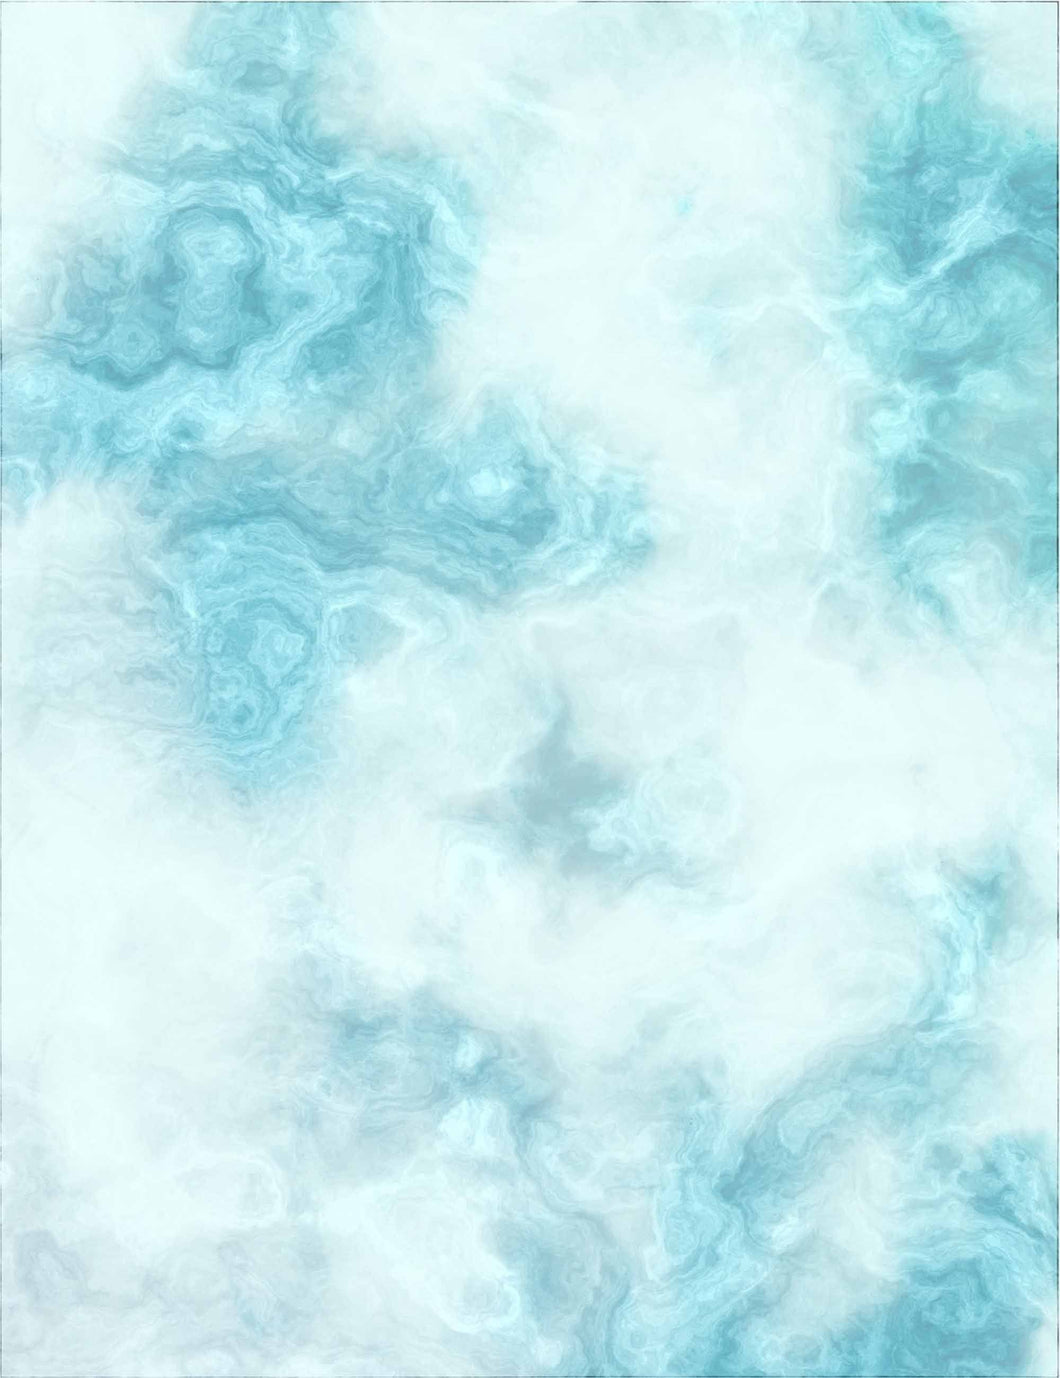 White And Cyan-Blue Watercolor Textured Printed Backdrop